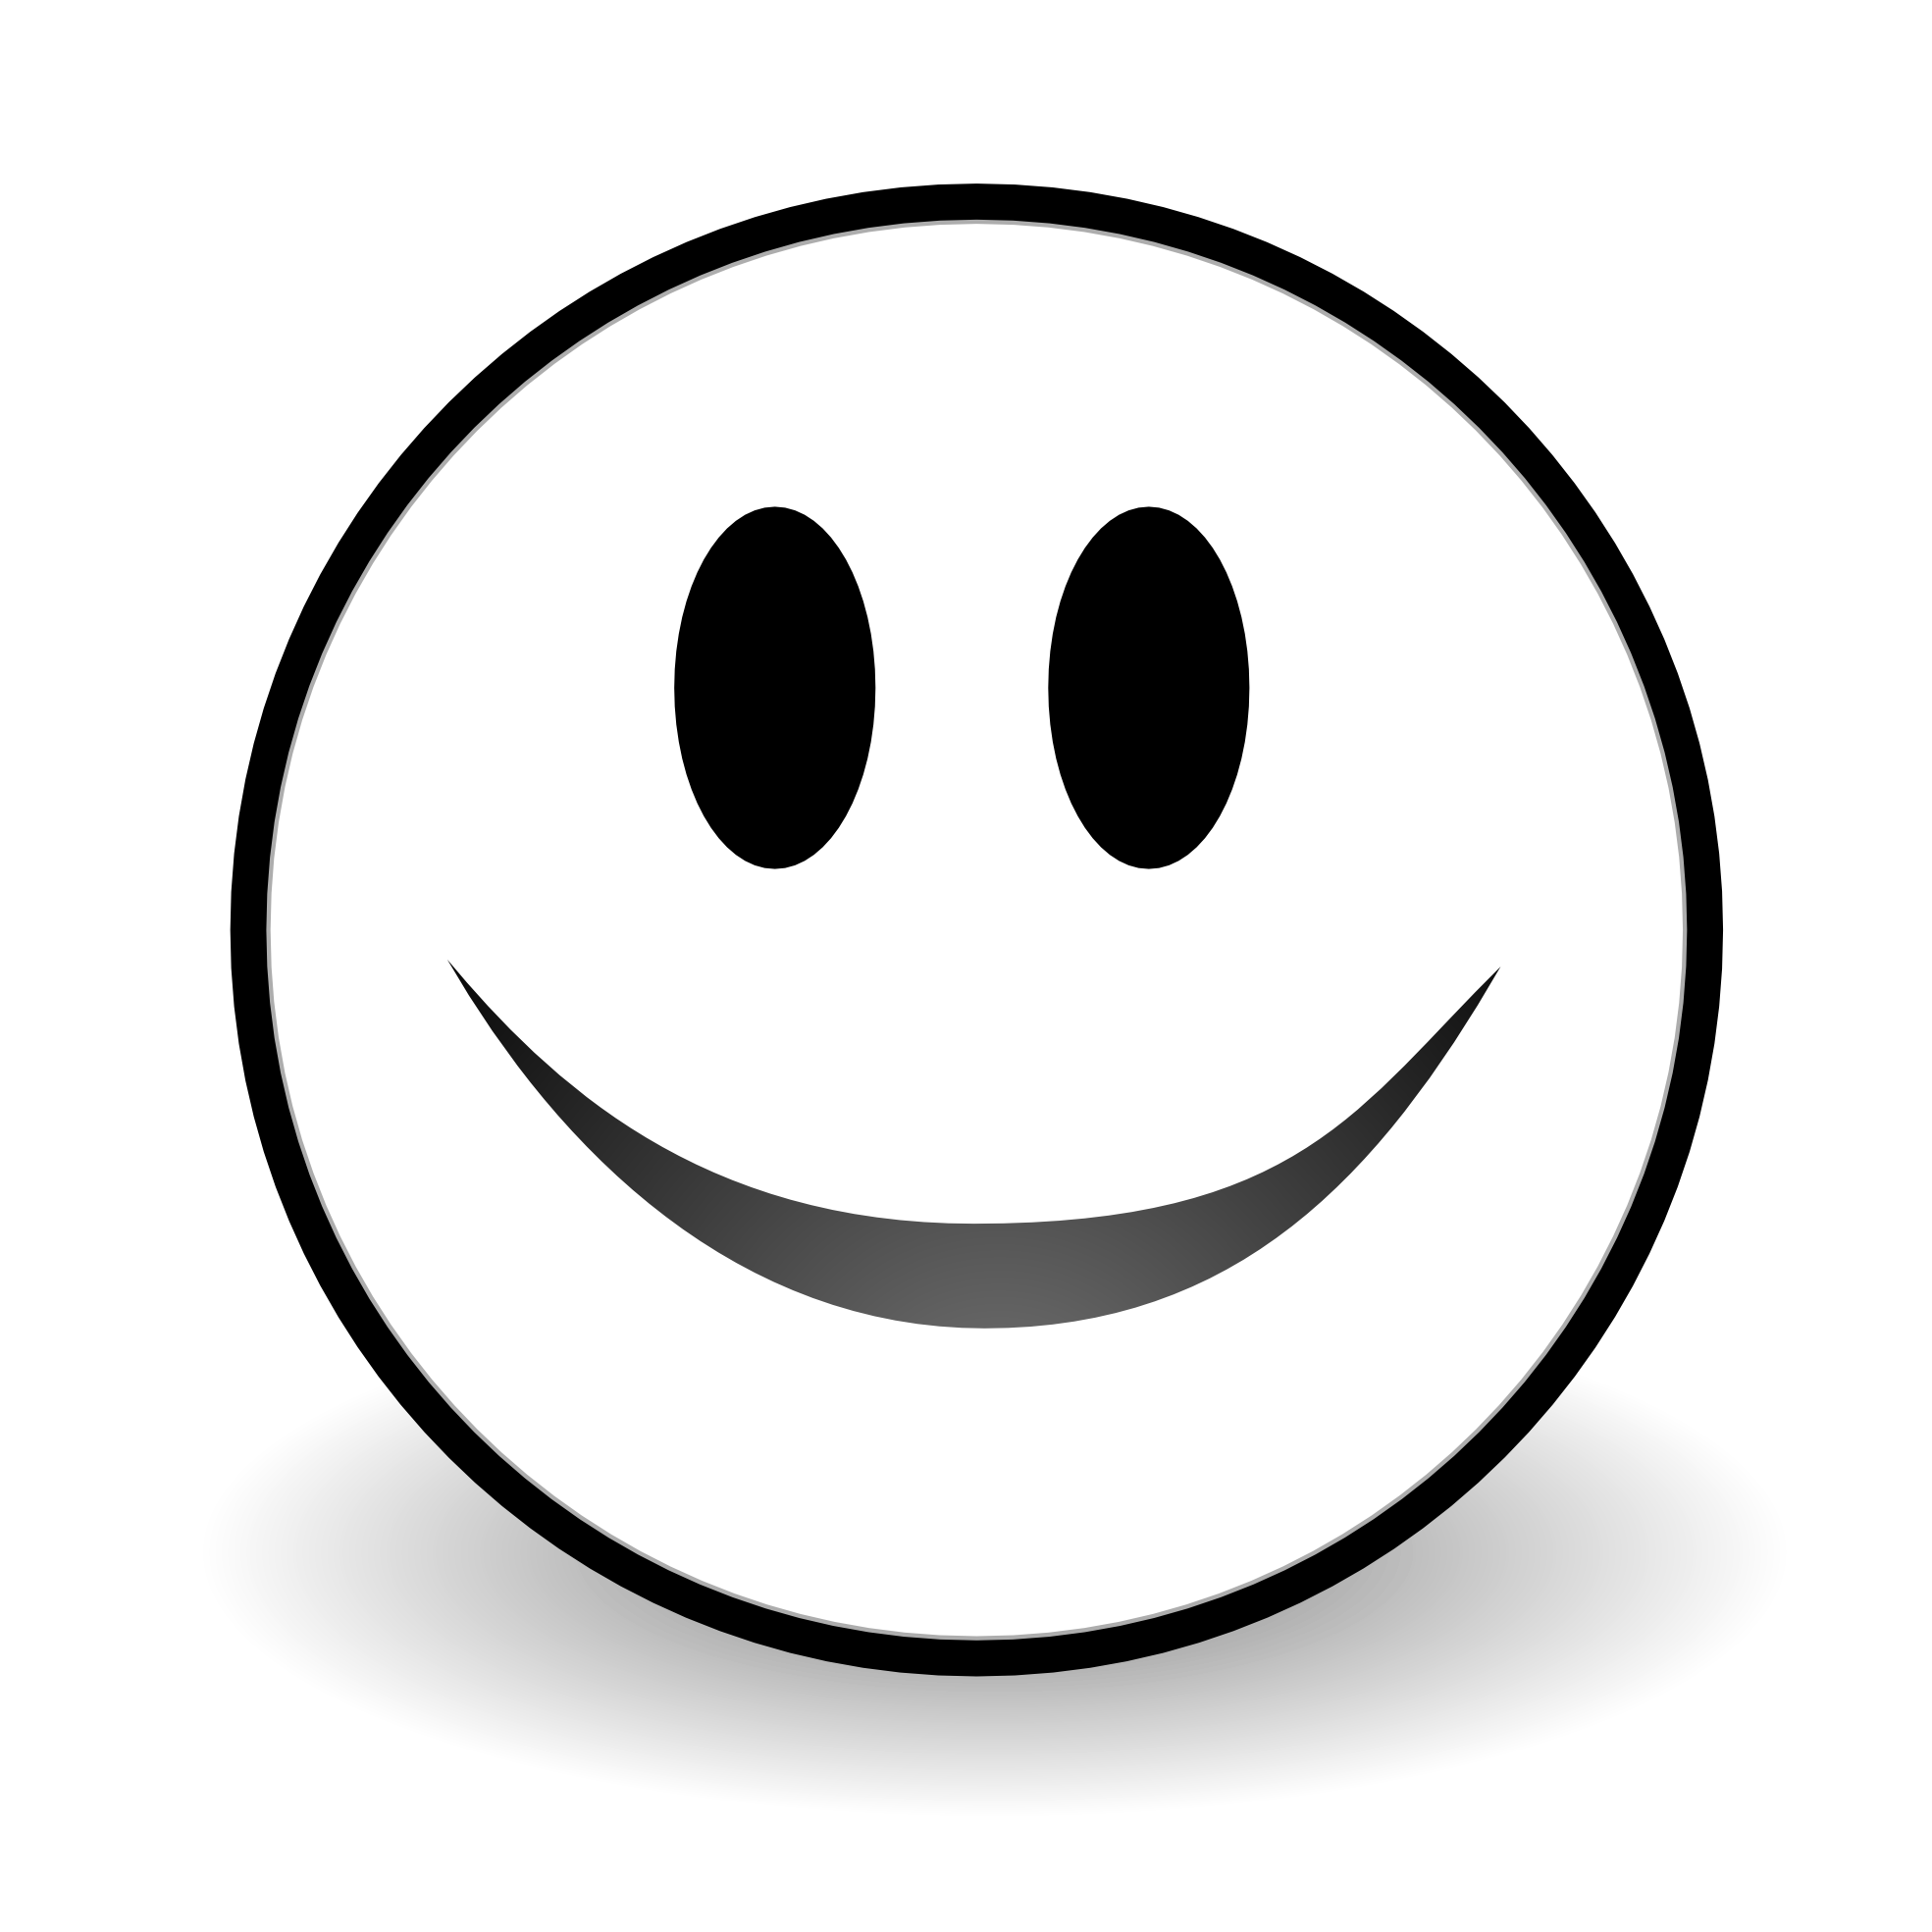 1969x1969 Smile Black And White Clipart